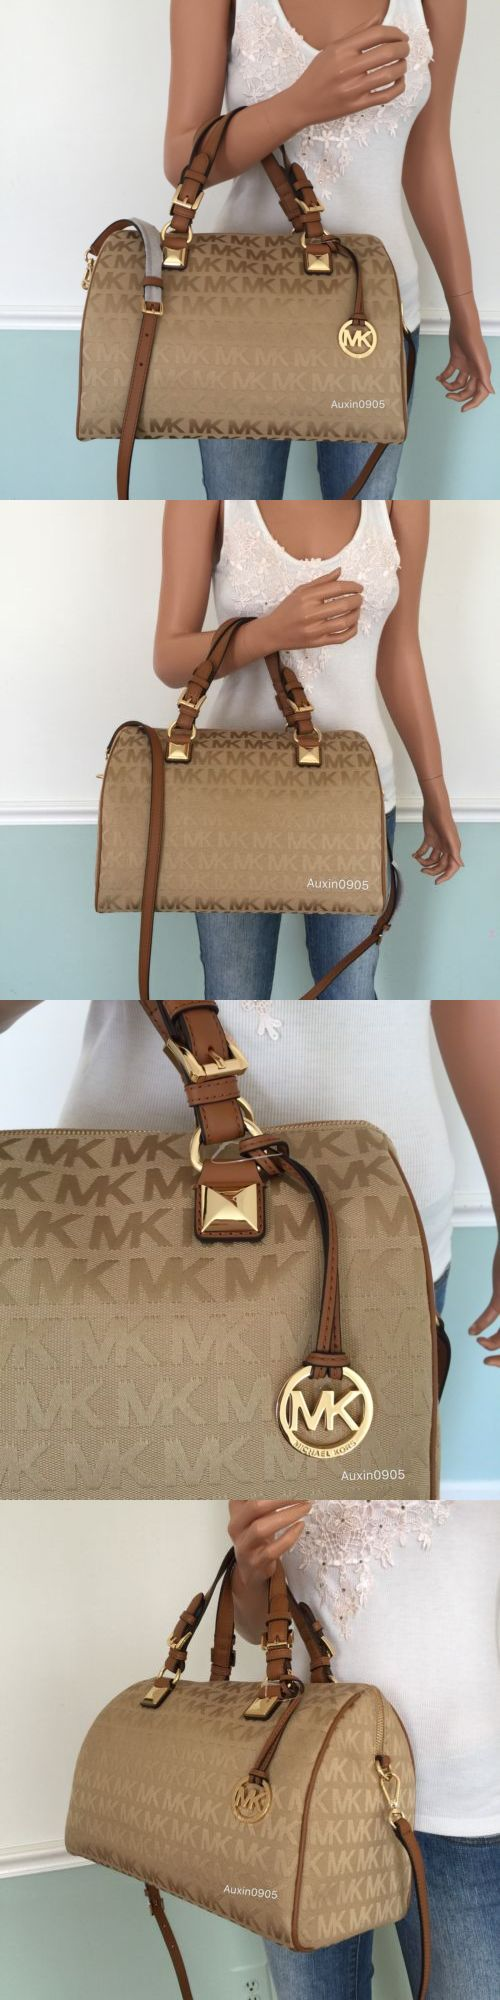 Women Handbags and Purses: New! Michael Kors Brown Mk Signature Large Satchel Tote Shoulder Crossbody Purse BUY IT NOW ONLY: $219.0